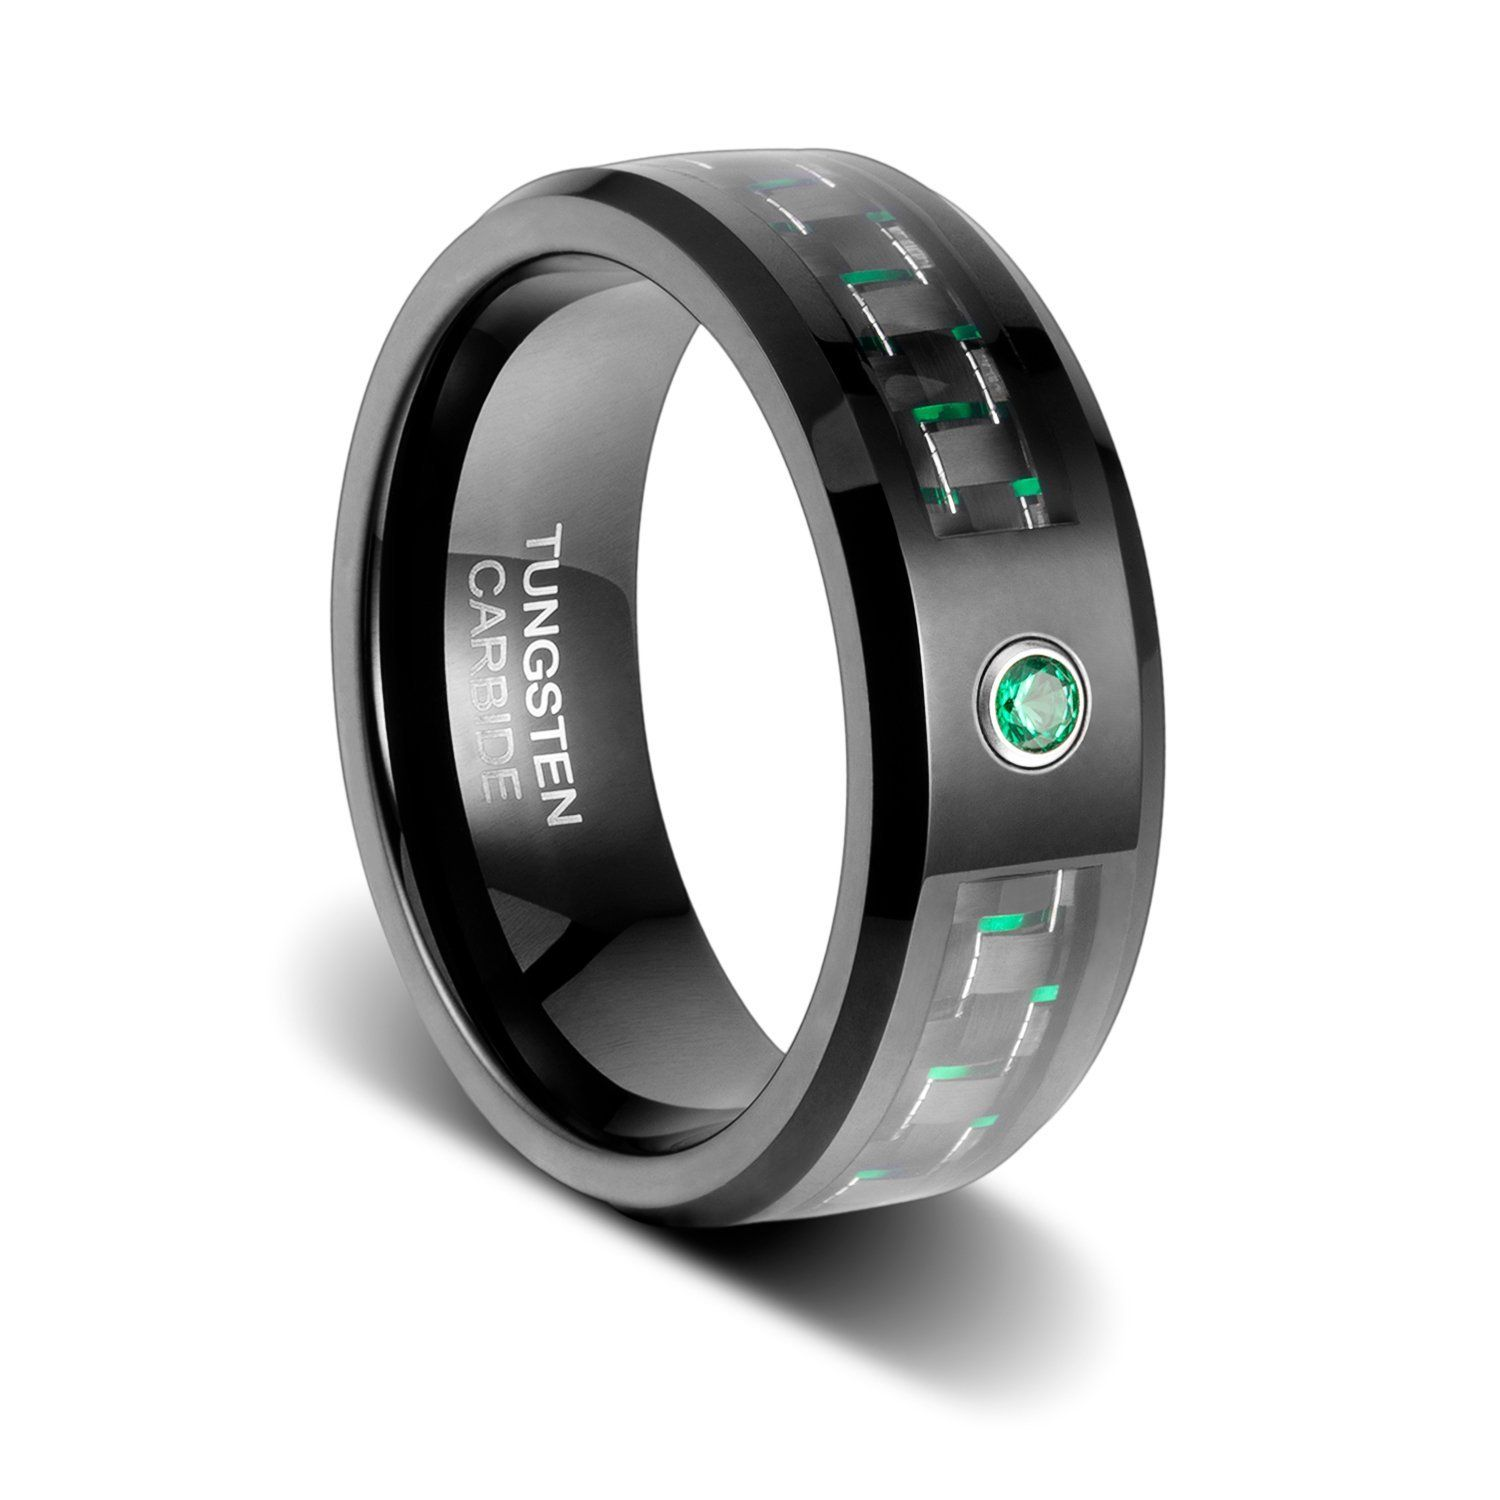 rings us com carbon amazon wedding half inlay dp unisex sizes solitaire blue jewelry tungsten black whole fiber ring